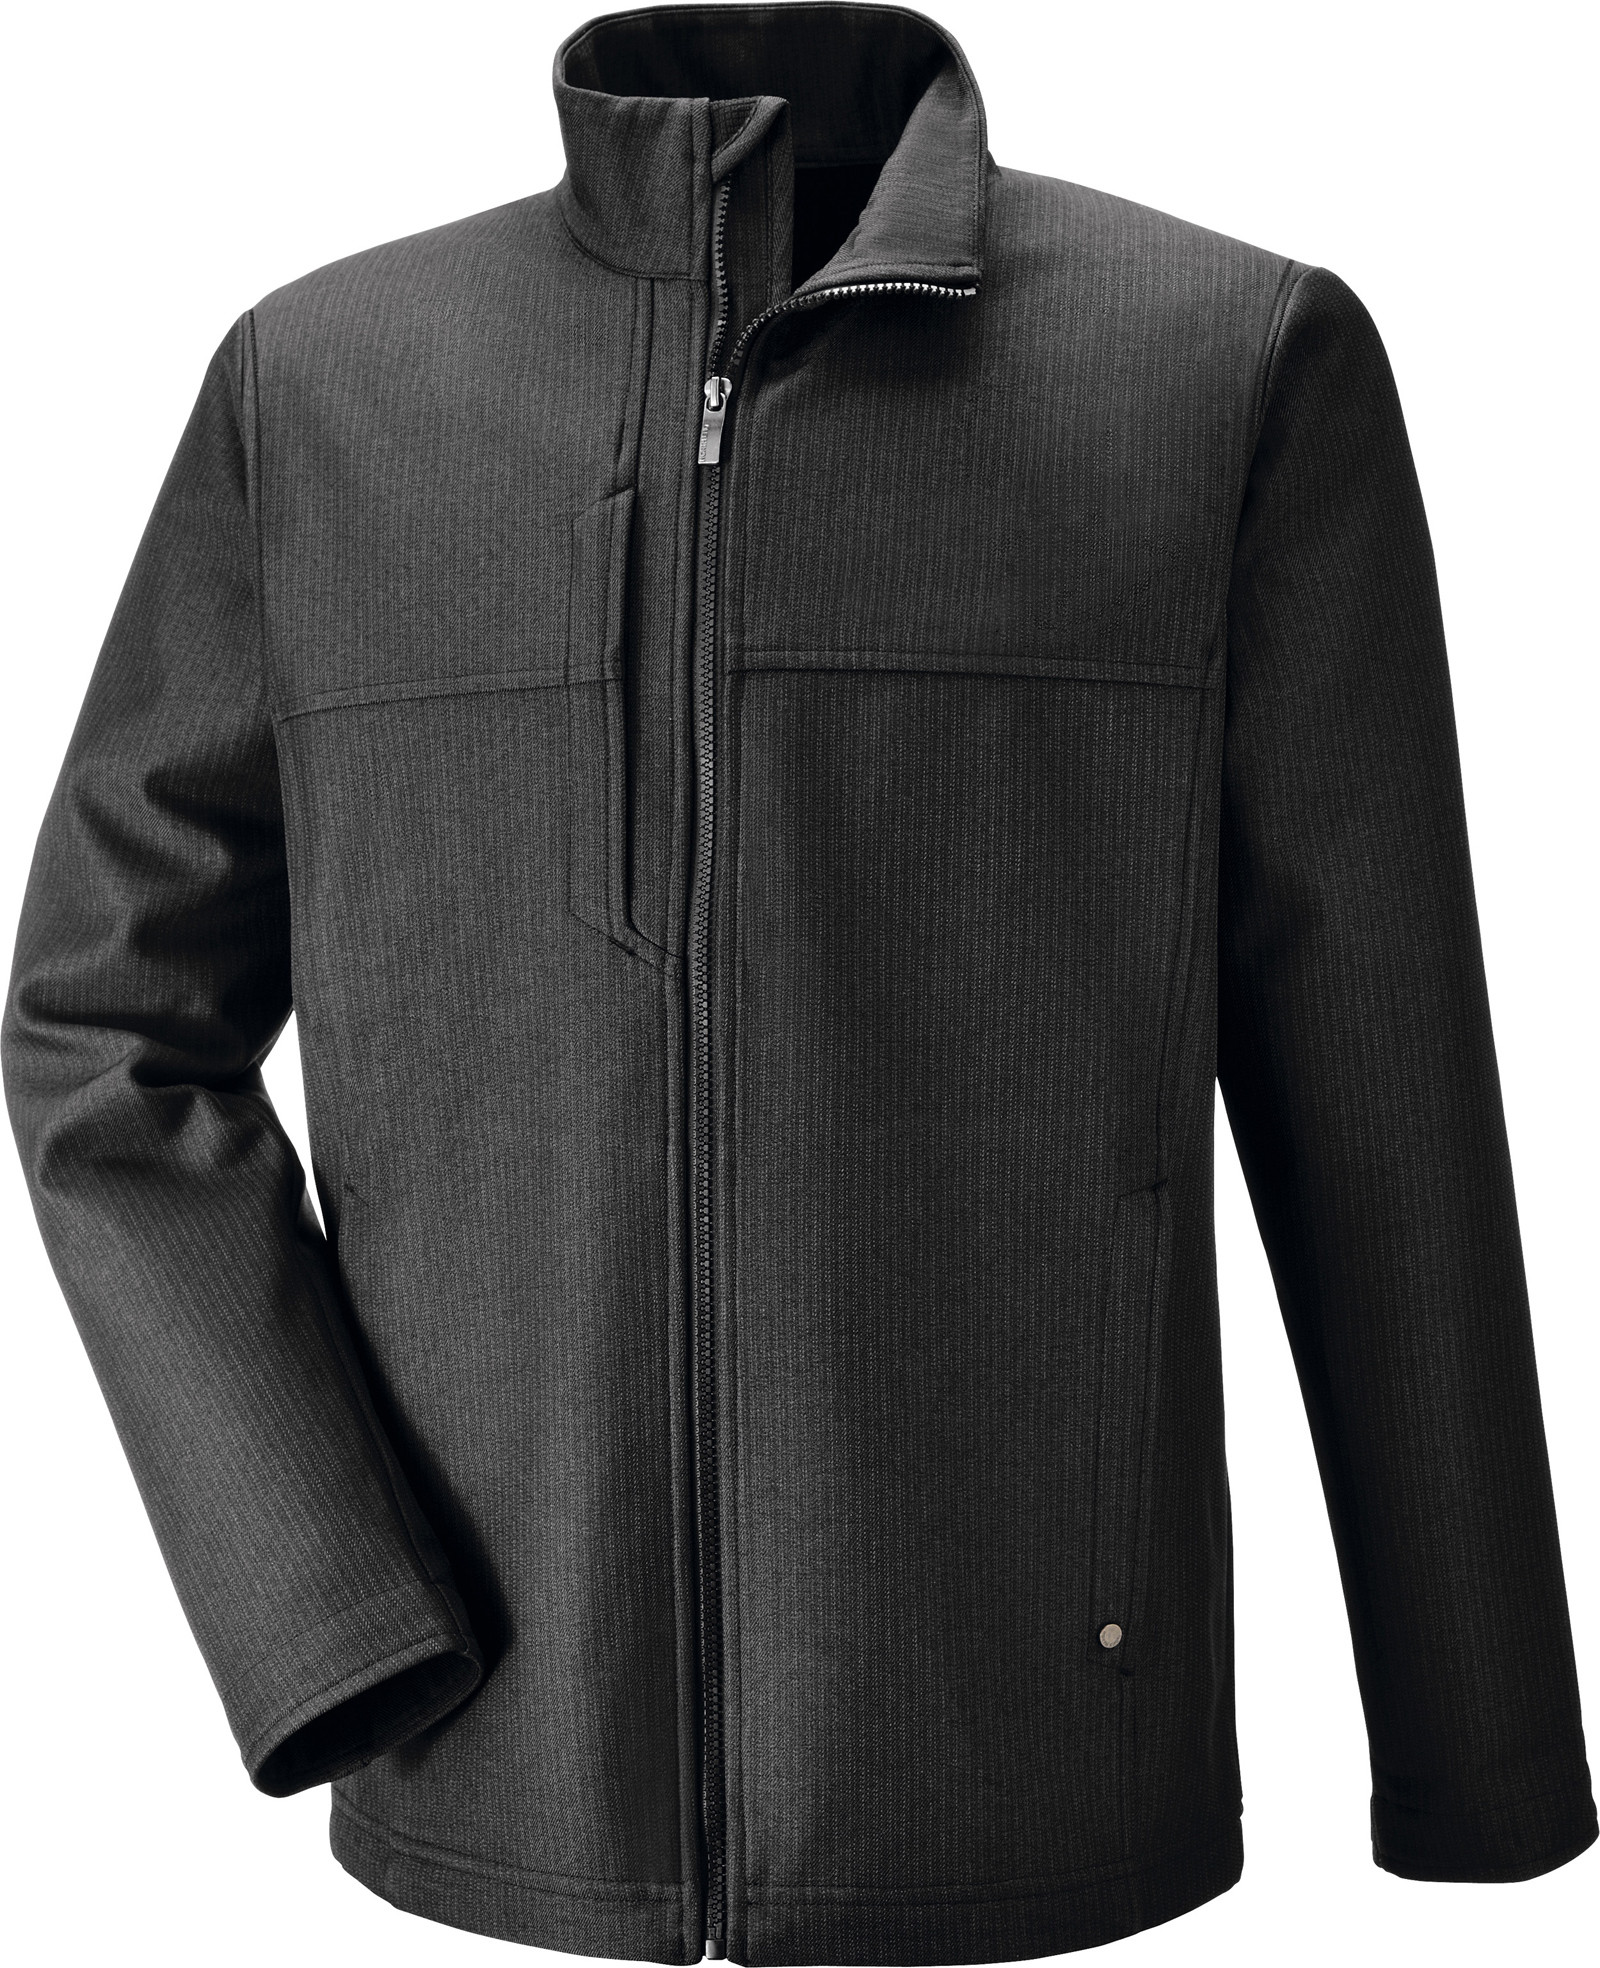 Ash City UTK 1 Warm.Logik 88171 - Men's Textured City SOFT Soft Shell Jacket